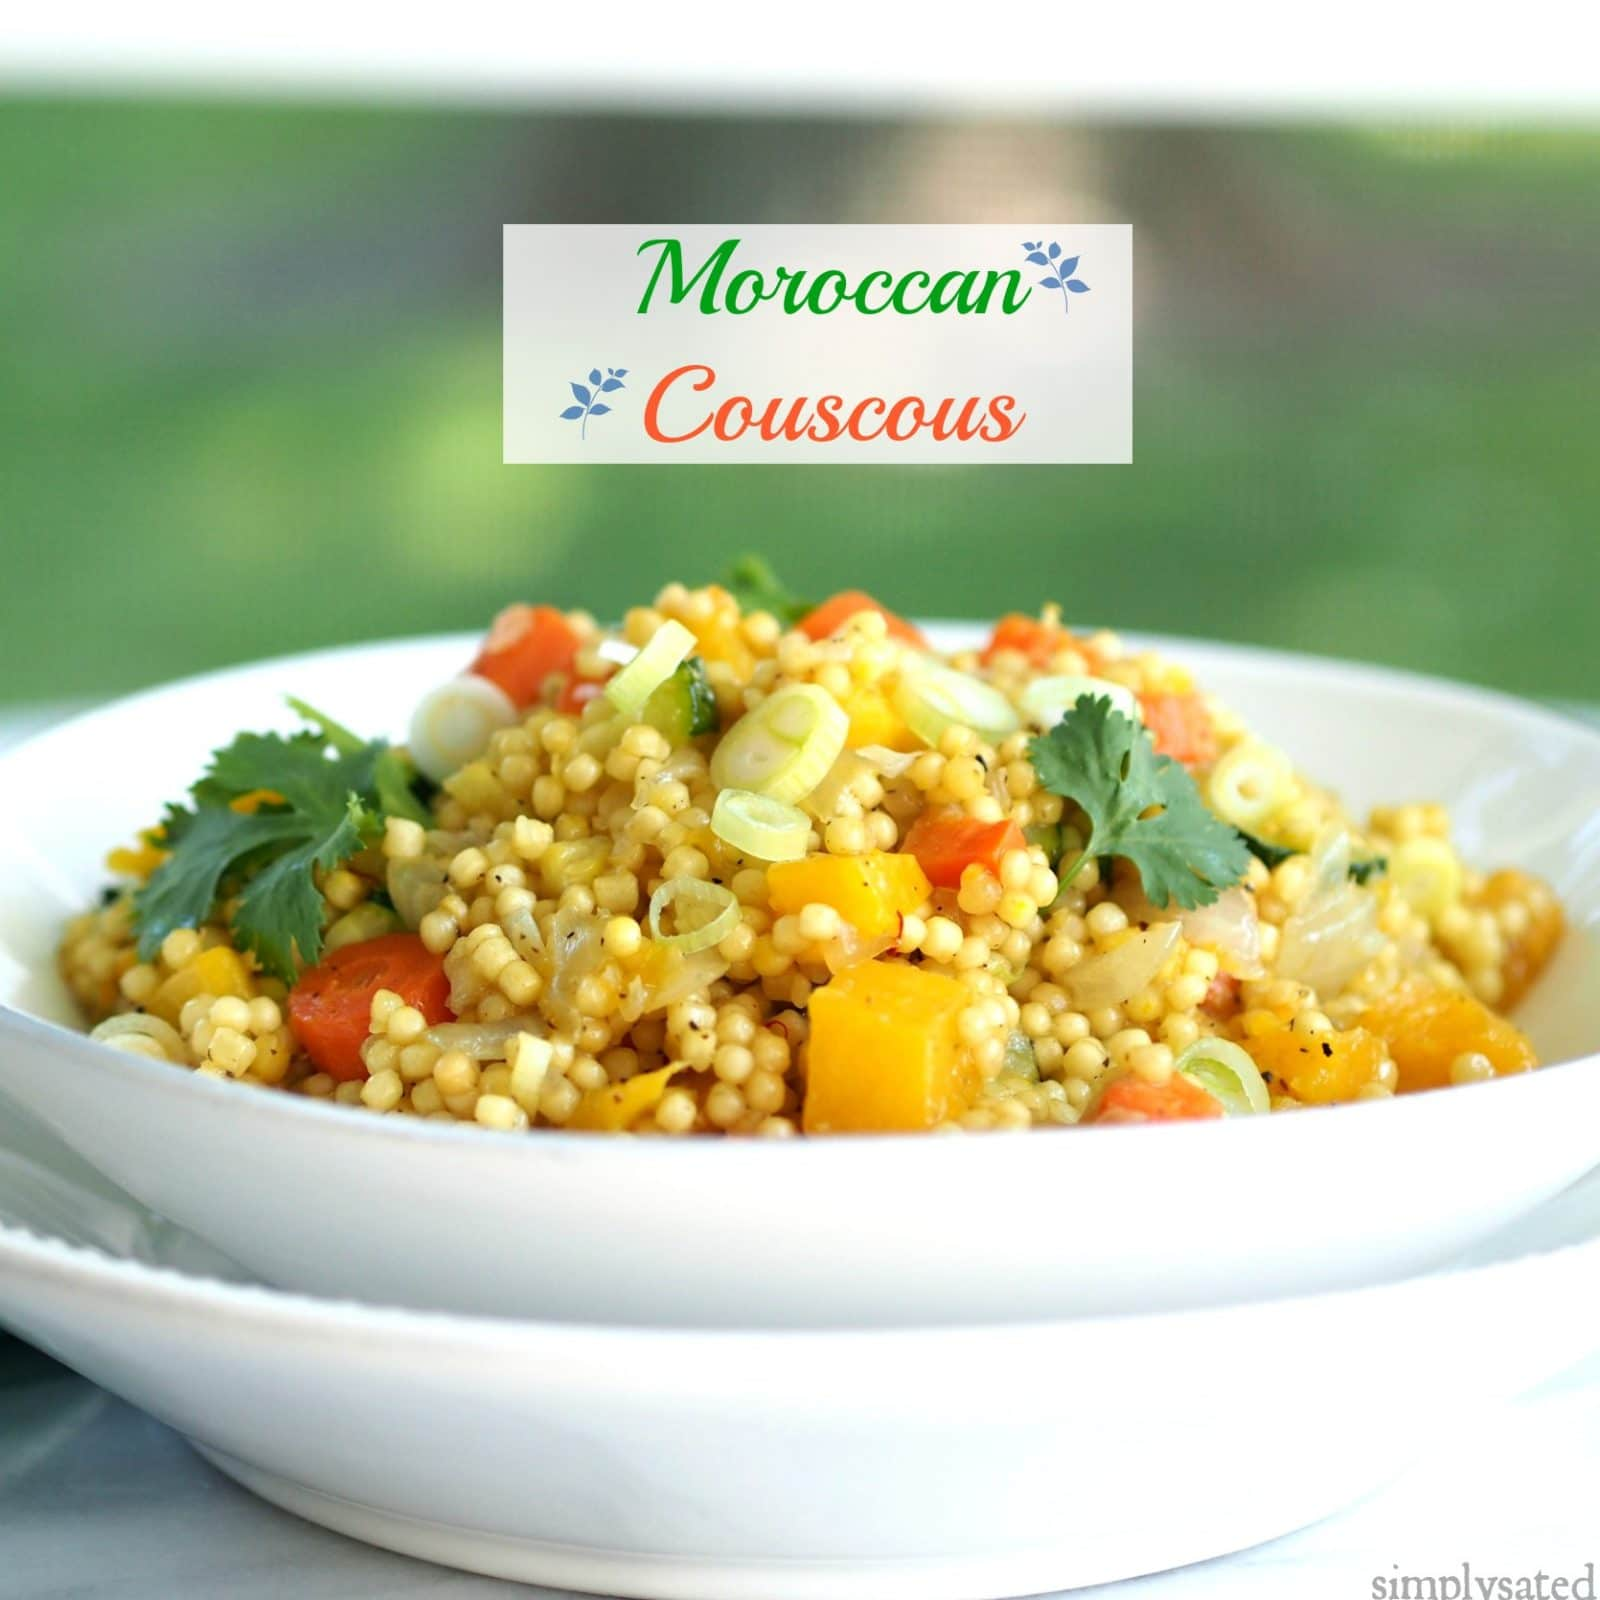 Moroccan Couscous Simply Sated